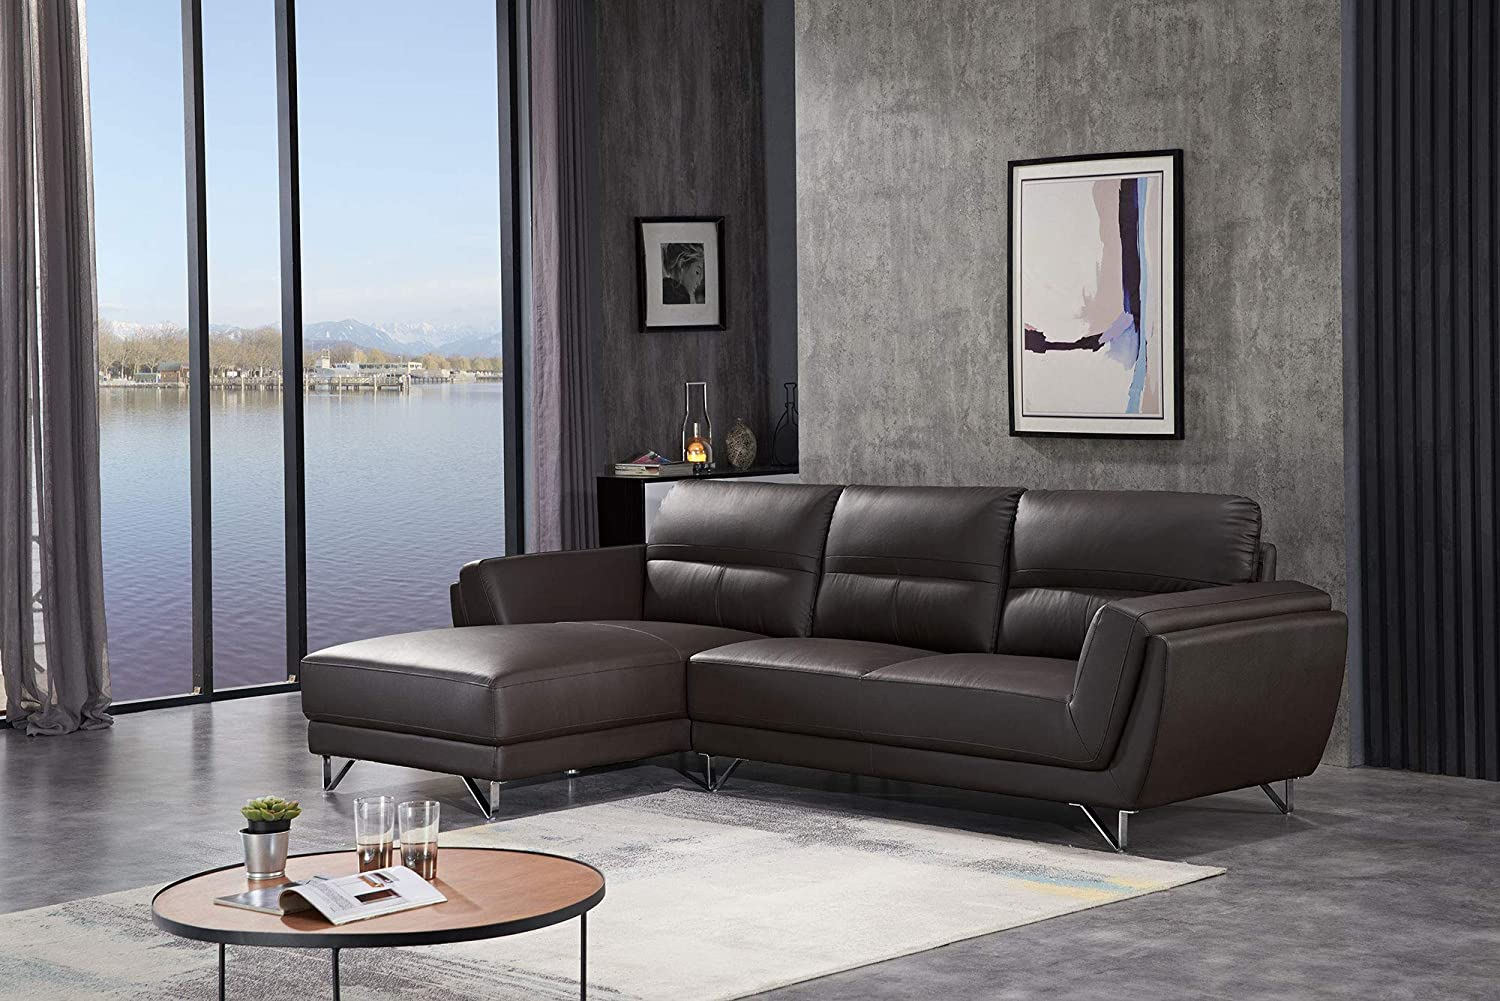 FUNRELAX Sectional Sofa